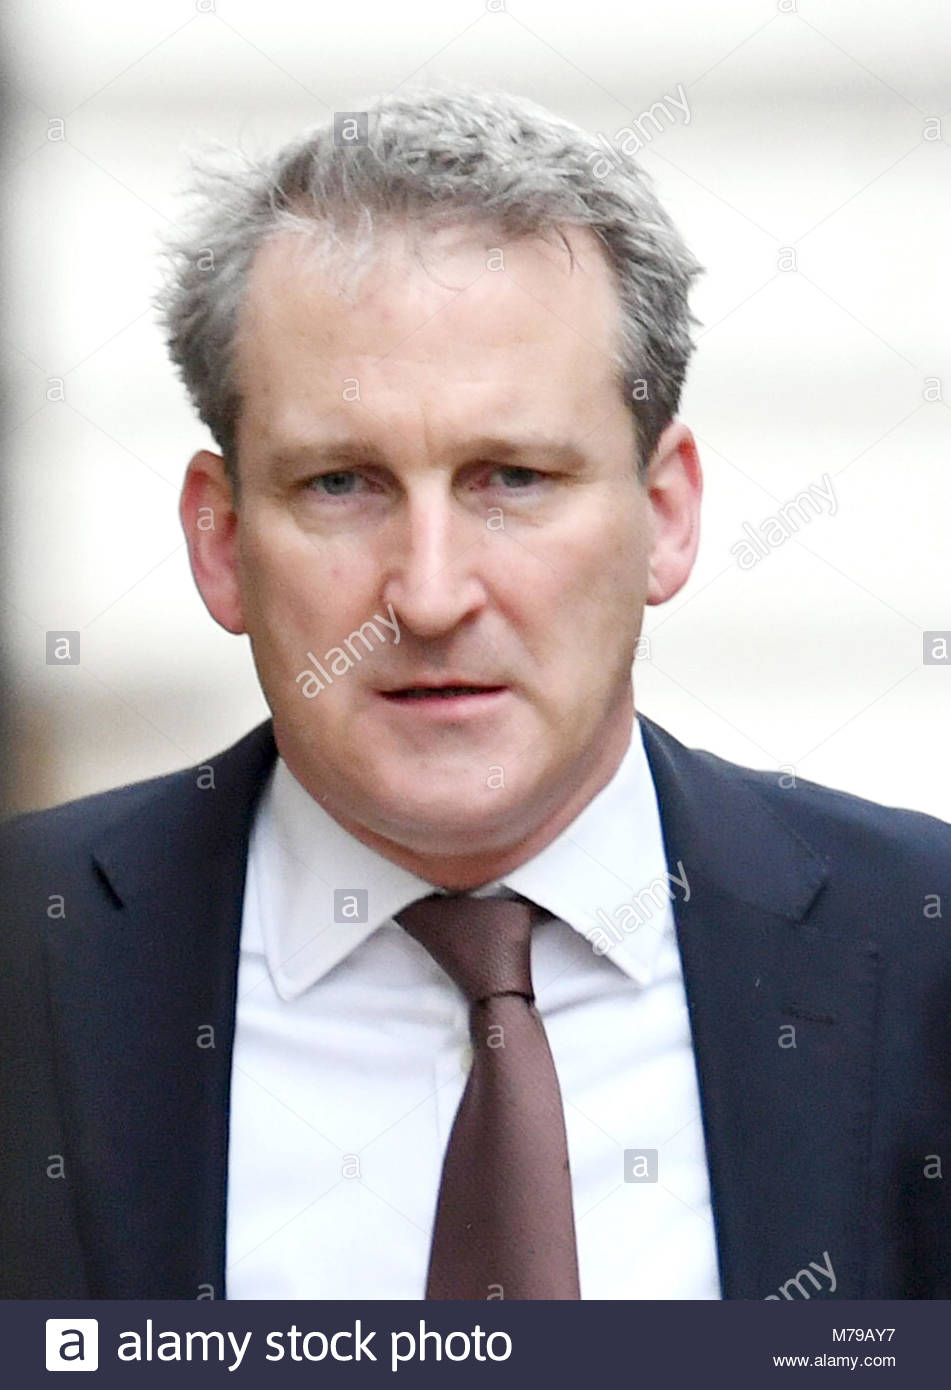 EMBARGOED TO 0001 SATURDAY MARCH 10. File photo dated 23/01/18 of Damian Hinds, who will pledge to cut teachers' - Stock Image